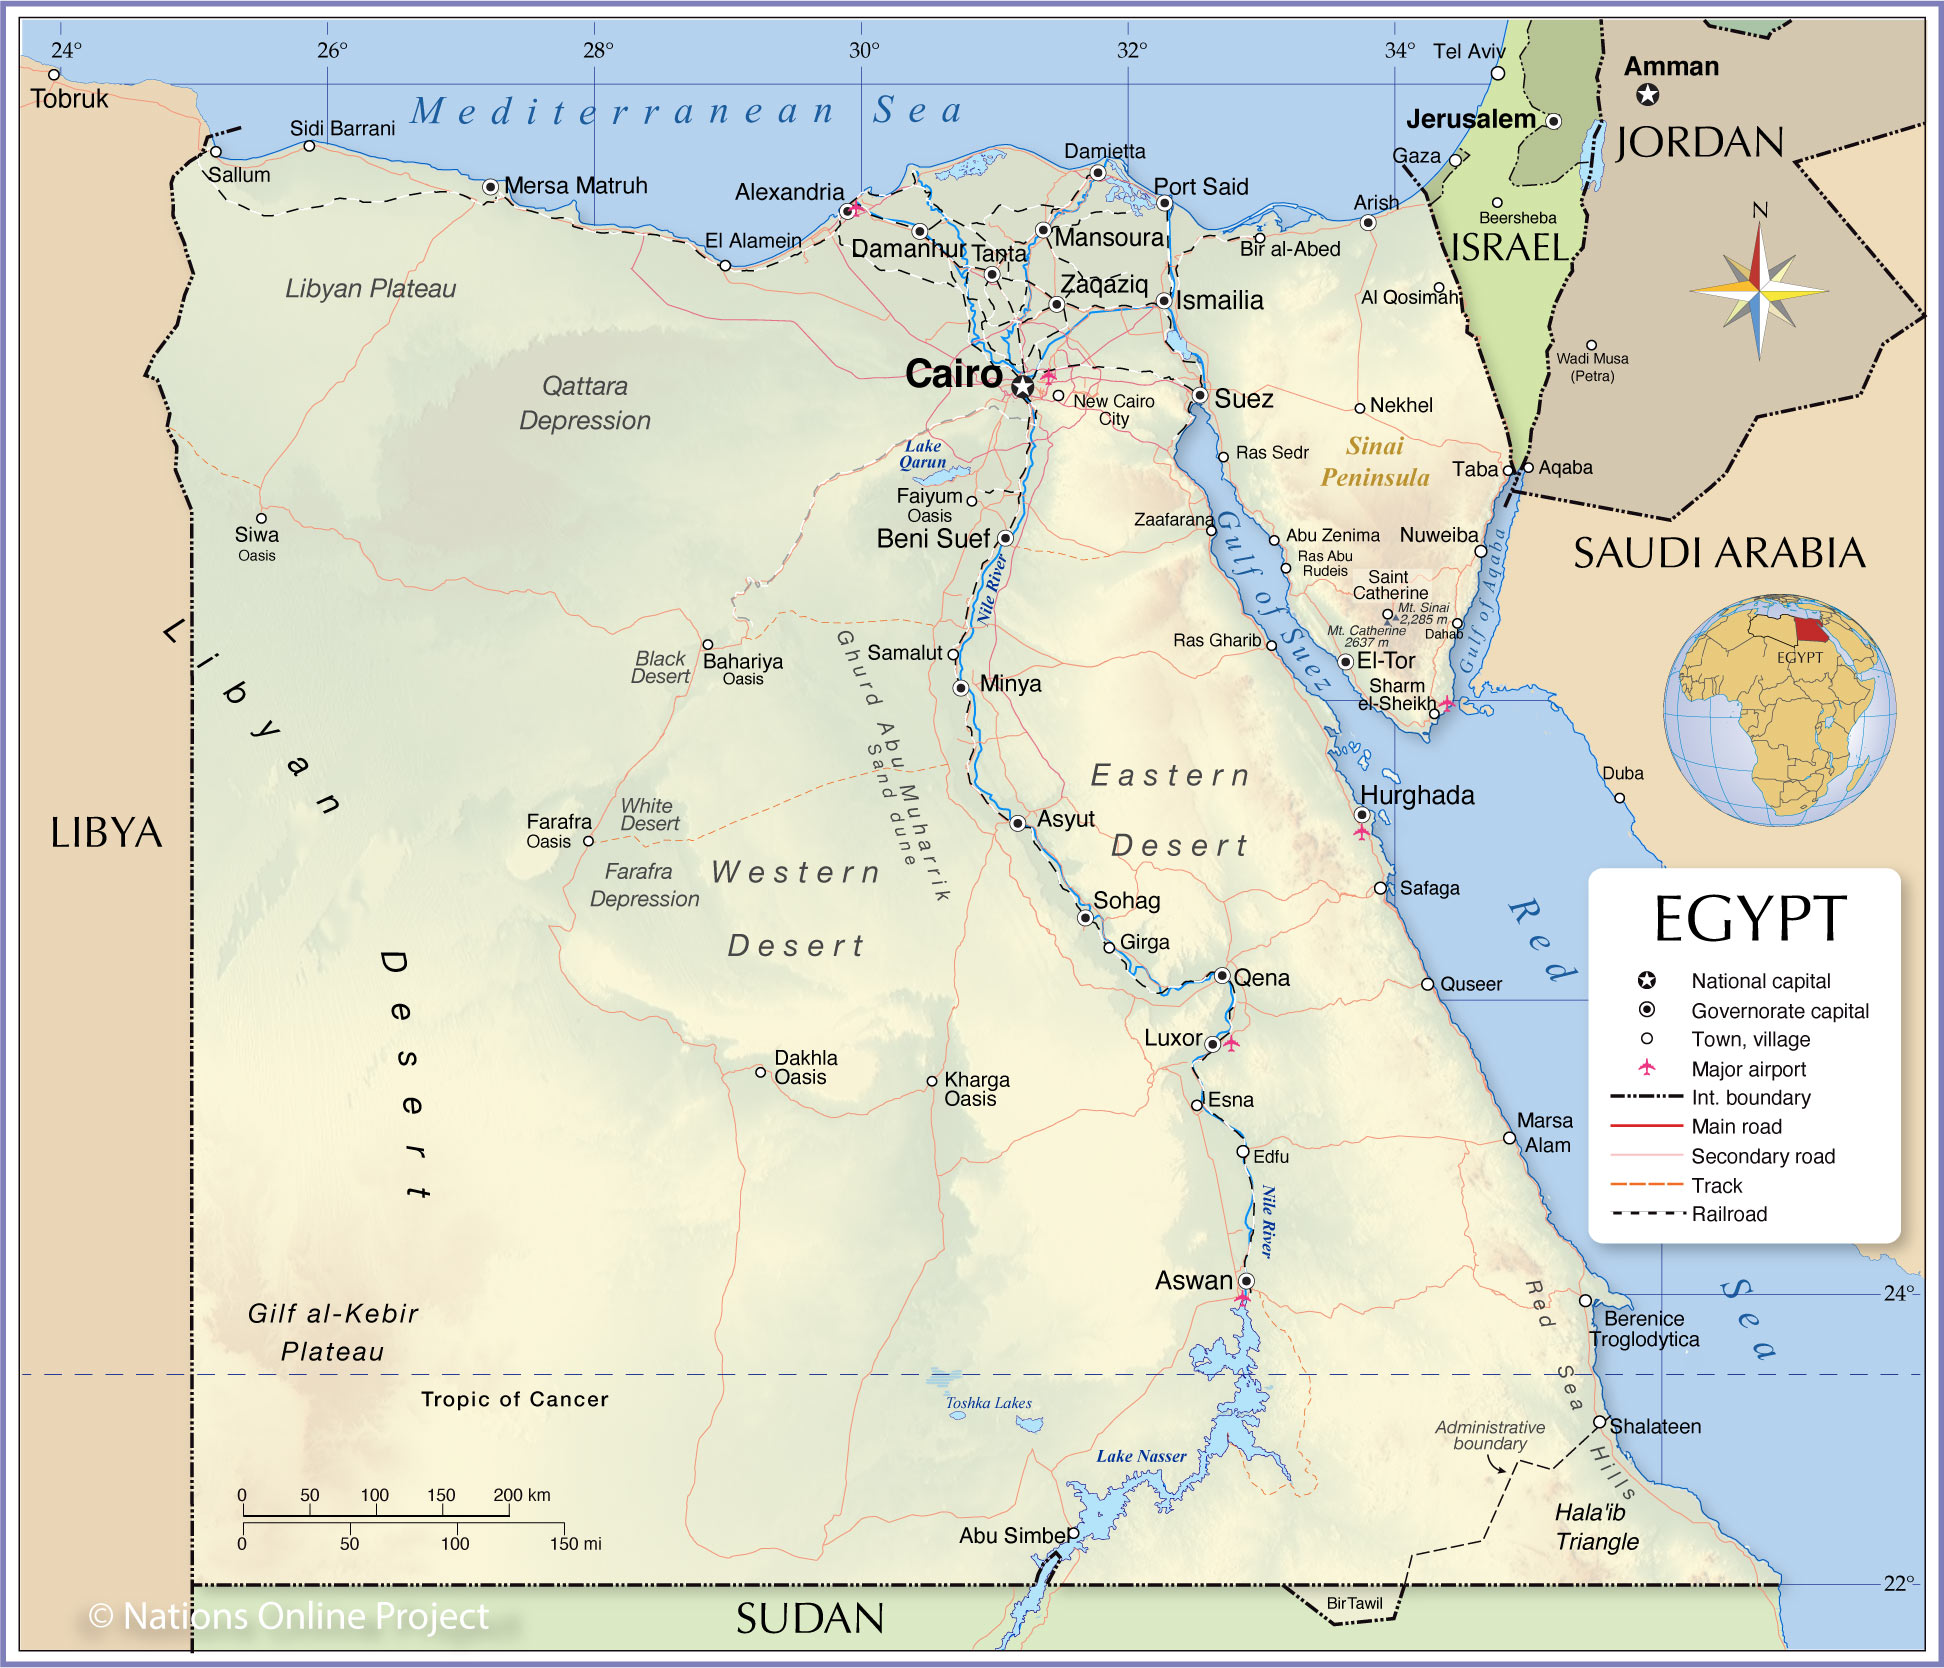 Image found at http://www.nationsonline.org/maps/egypt_map.jpg